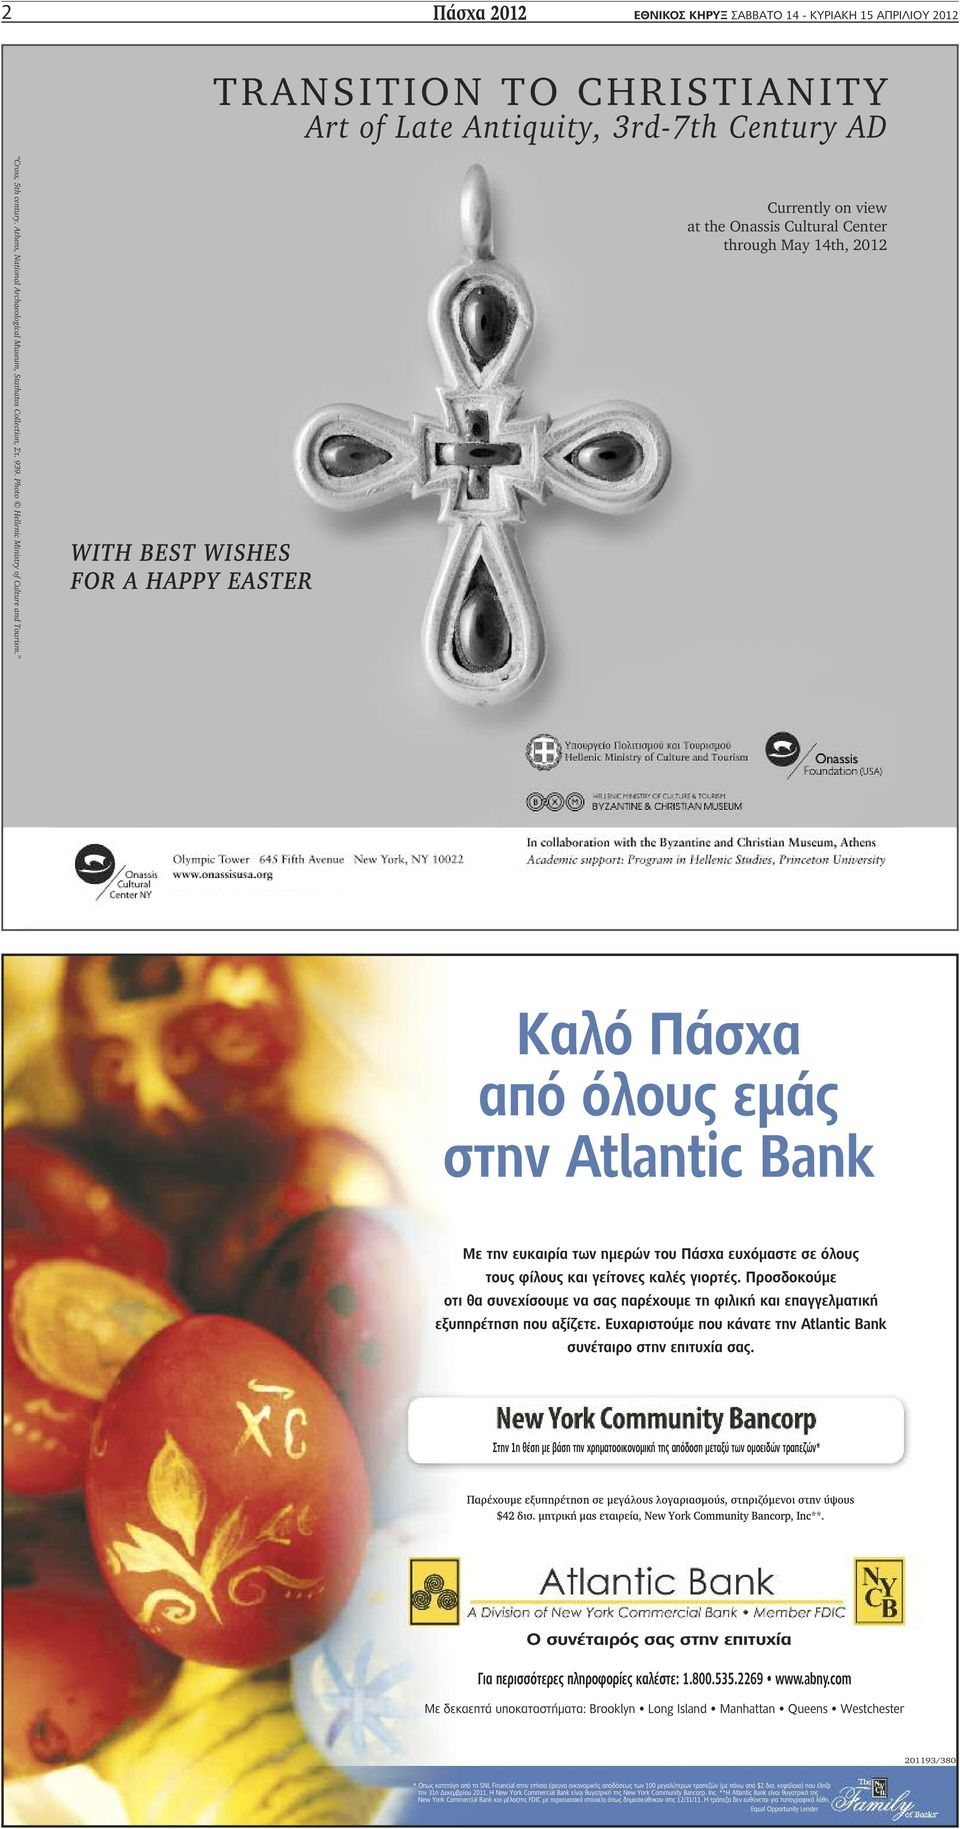 WITH BEST WISHES FOR A HAPPY EASTER Currently on view at the Onassis Cultural Center through May 14th, 2012 από όλους εμάς στην Atlantic Bank Με την ευκαιρία των ημερών του Πάσχα ευχόμαστε σε όλους